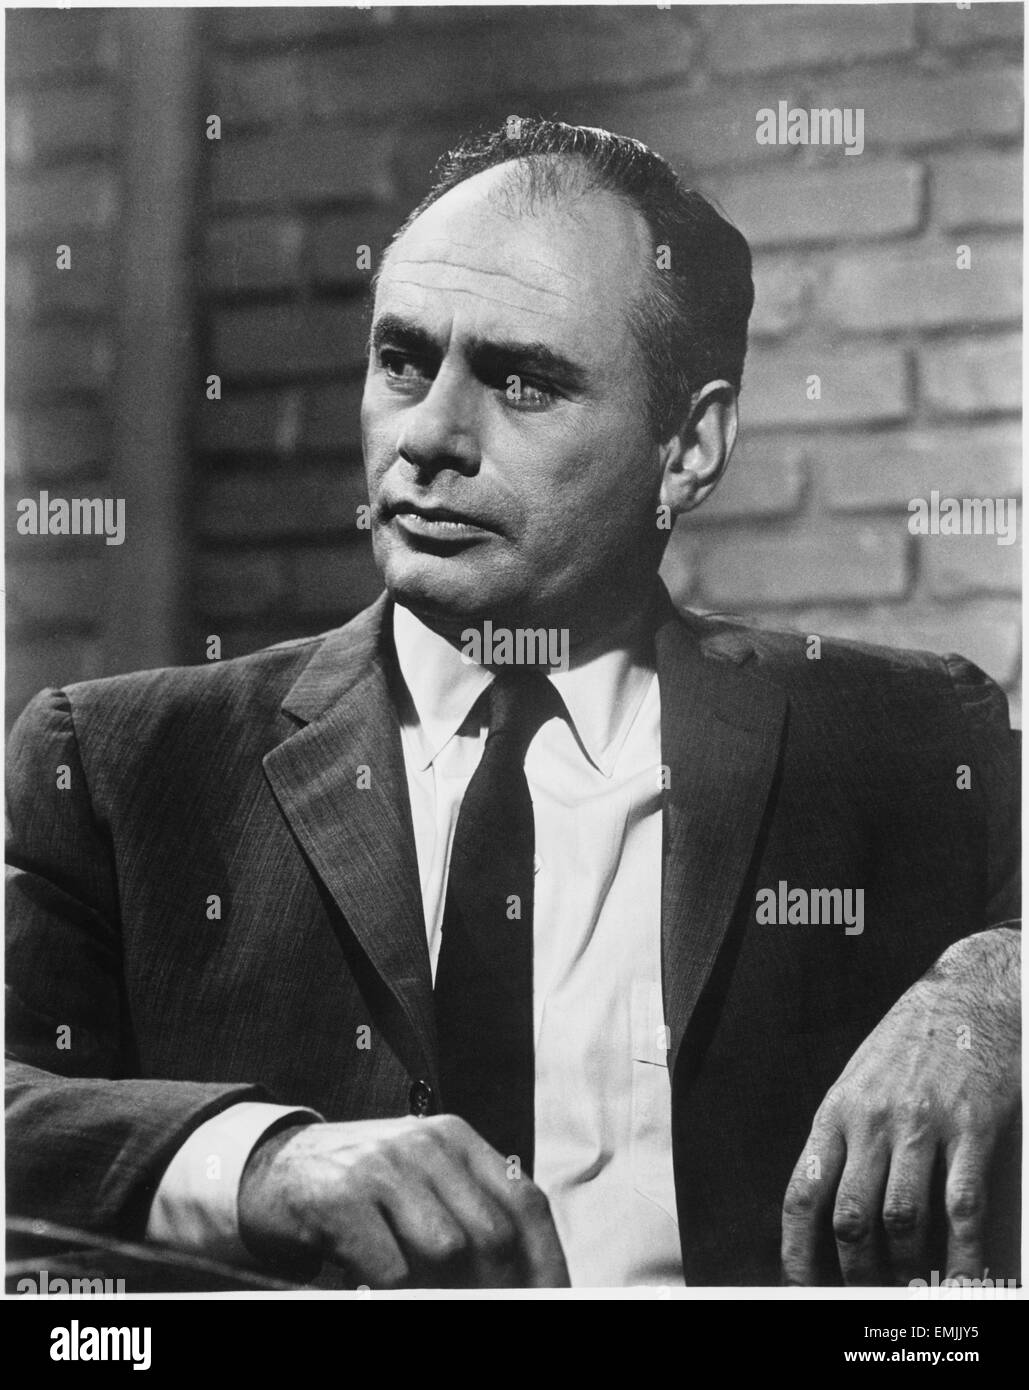 martin balsam academy awardmartin balsam and joyce van patten, martin balsam twilight zone, martin balsam movies, martin balsam net worth, martin balsam height, martin balsam daughter, martin balsam imdb, martin balsam academy award, martin balsam films, martin balsam cape fear, martin balsam a thousand clowns, martin balsam find a grave, martin balsam filmography, martin balsam photos, martin balsam tv shows, martin balsam nndb, martin balsam cause of death, martin balsam breakfast at tiffany's, martin balsam wins oscar, martin balsam wife